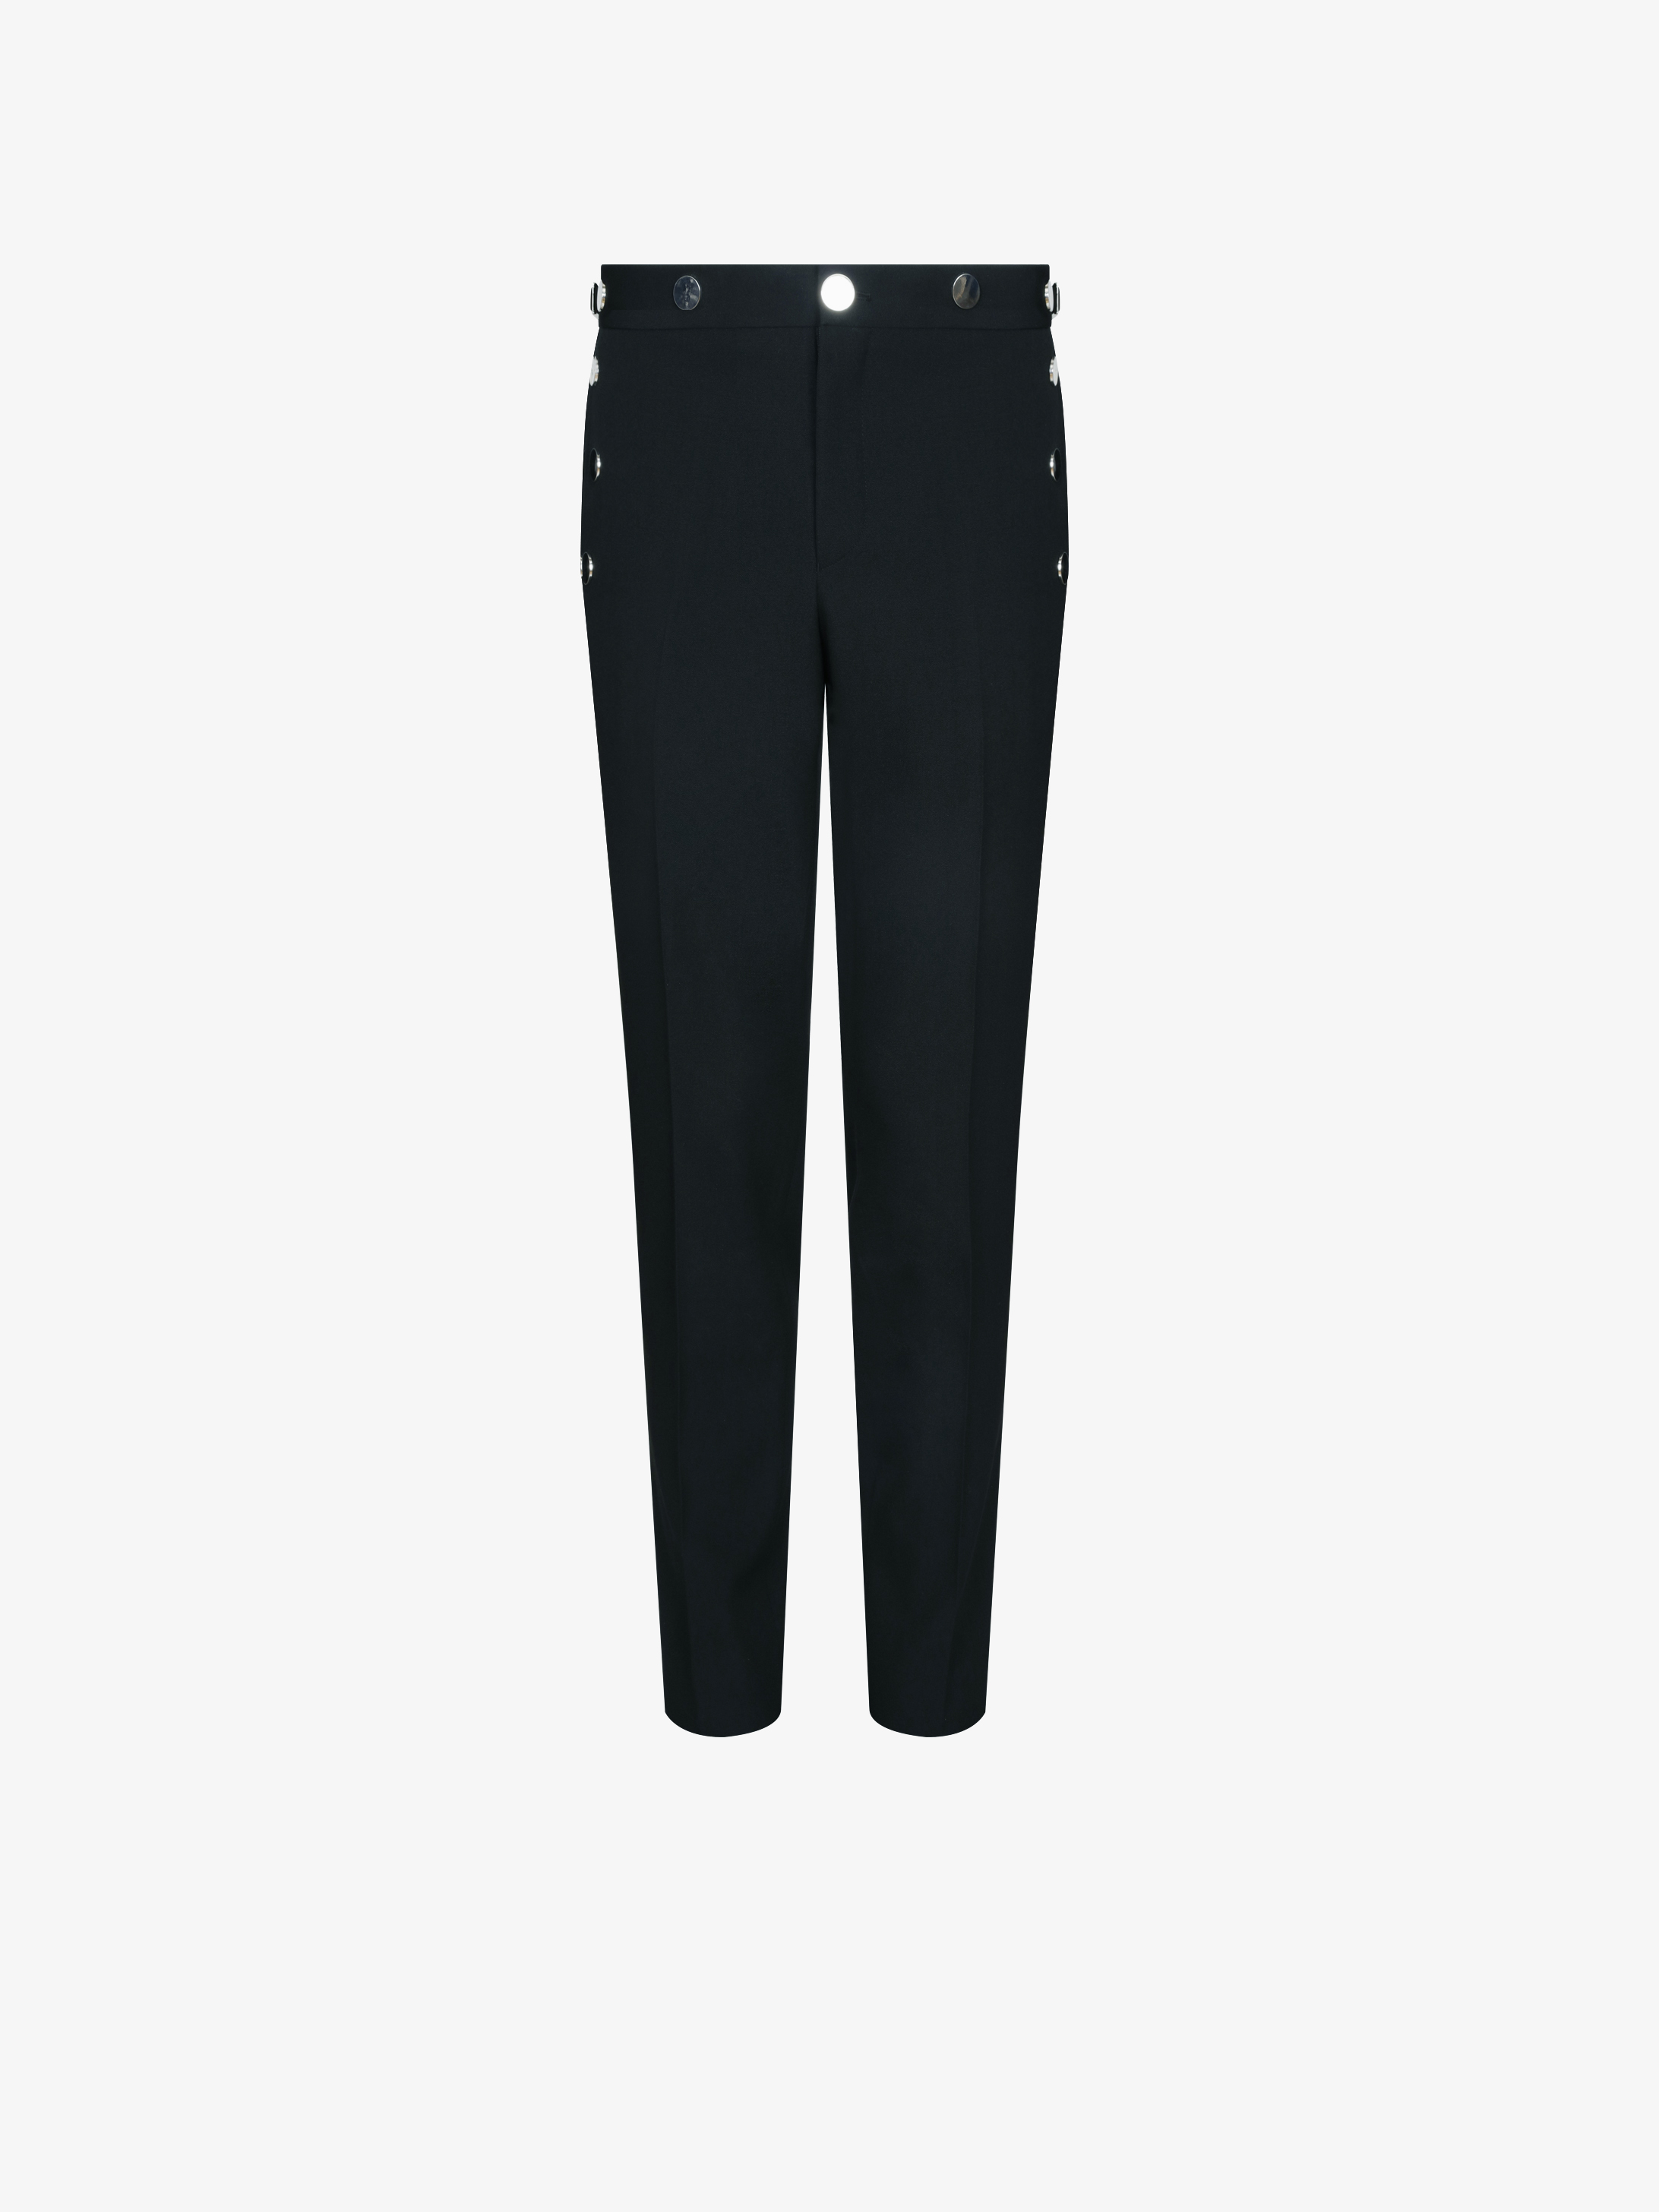 Slim fit trousers with metallic details